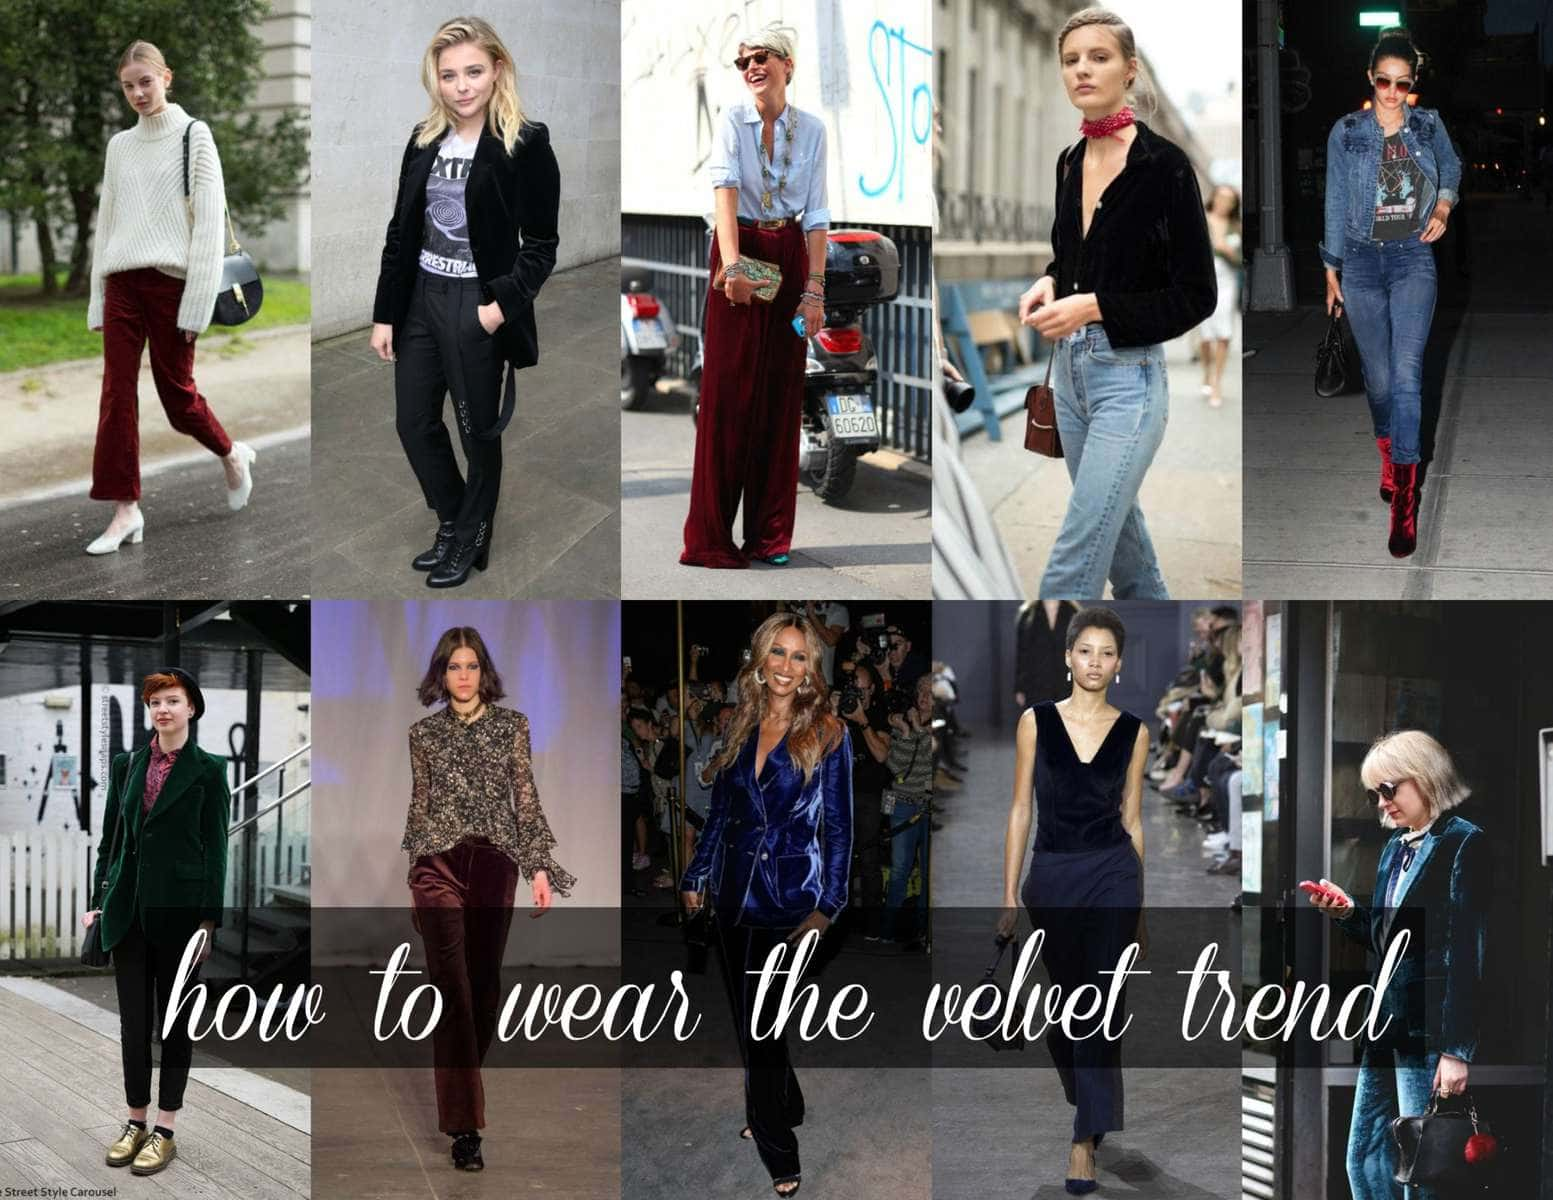 37cfce75d94da The Velvet Trend  How to Wear It without Looking Like a  90s Flashback   Sponsored